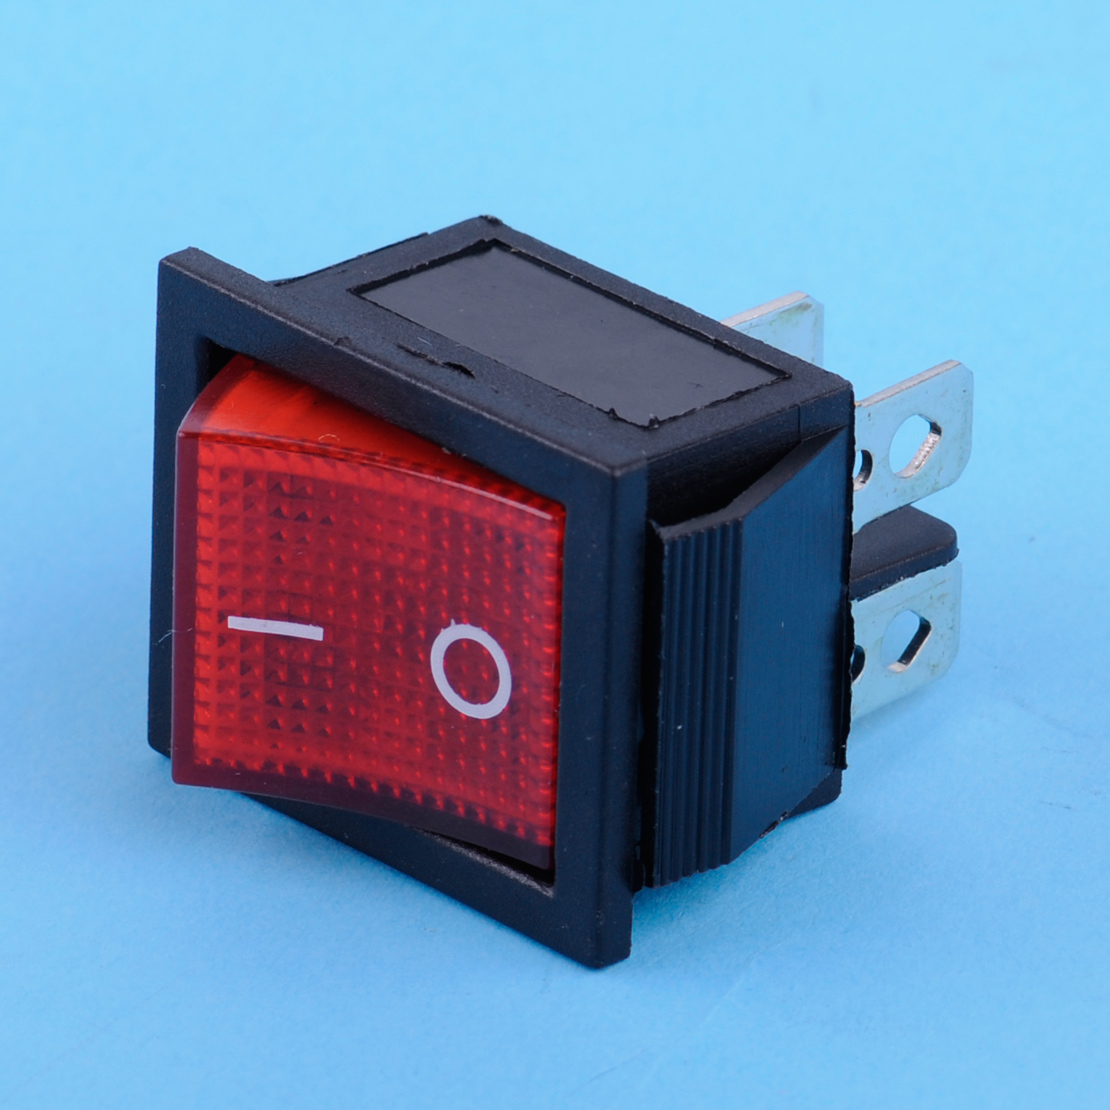 CITALL Car Motorcycle Boat On-Off 2 Position 4 Pin Terminals Snap-in Power Control Rocker Switch Red Indication Light